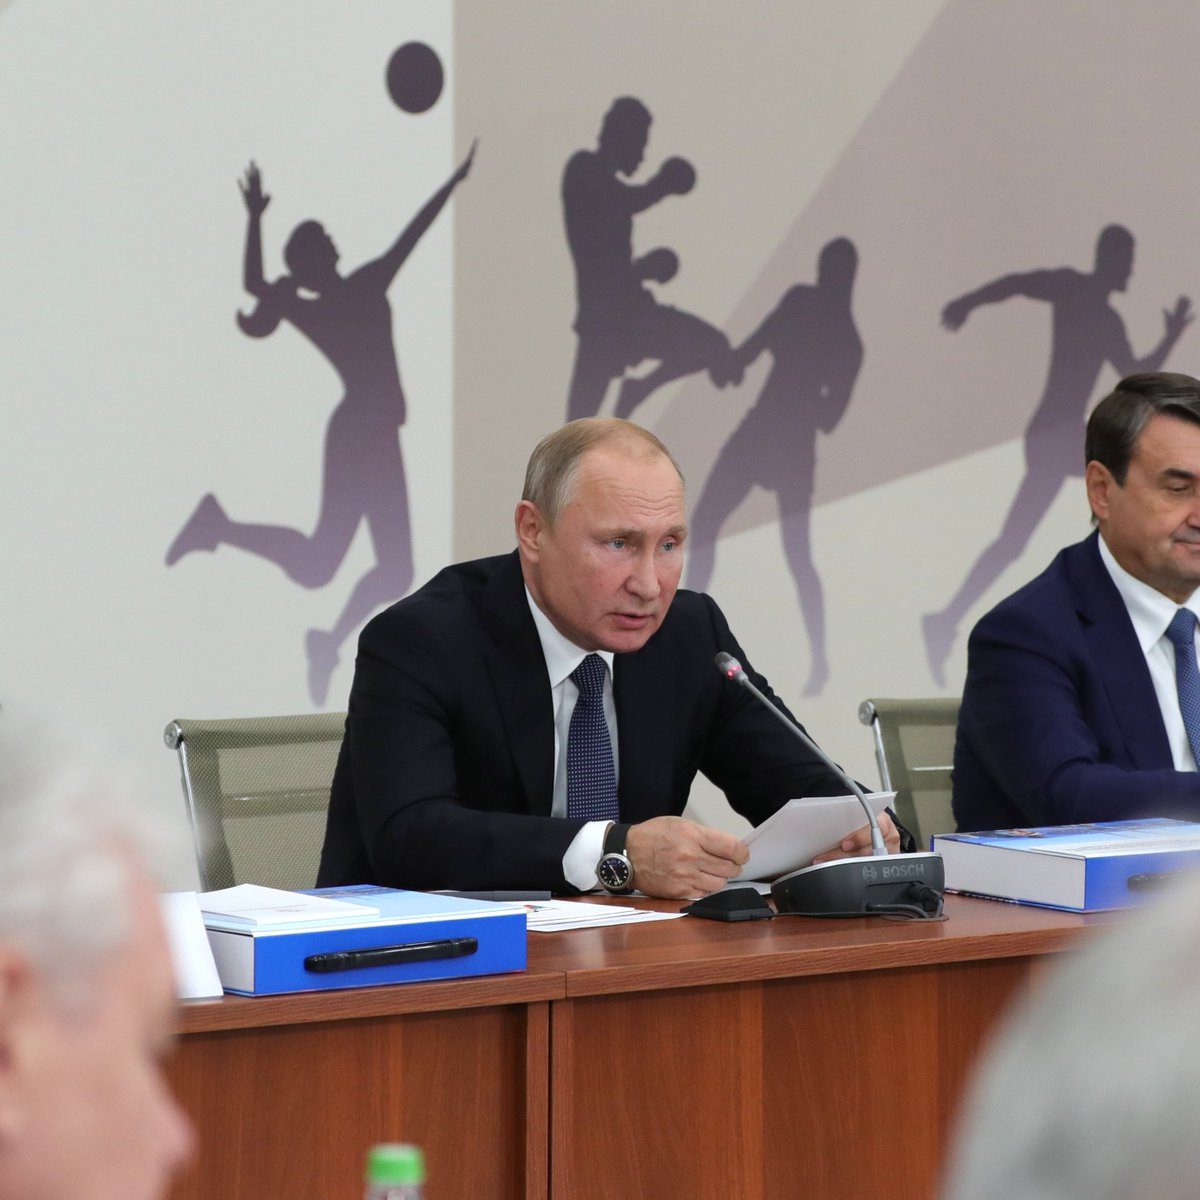 #NizhnyNovgorod: Meeting of the Council for the Development of Physical Culture and Sport bit.ly/35t10DZ